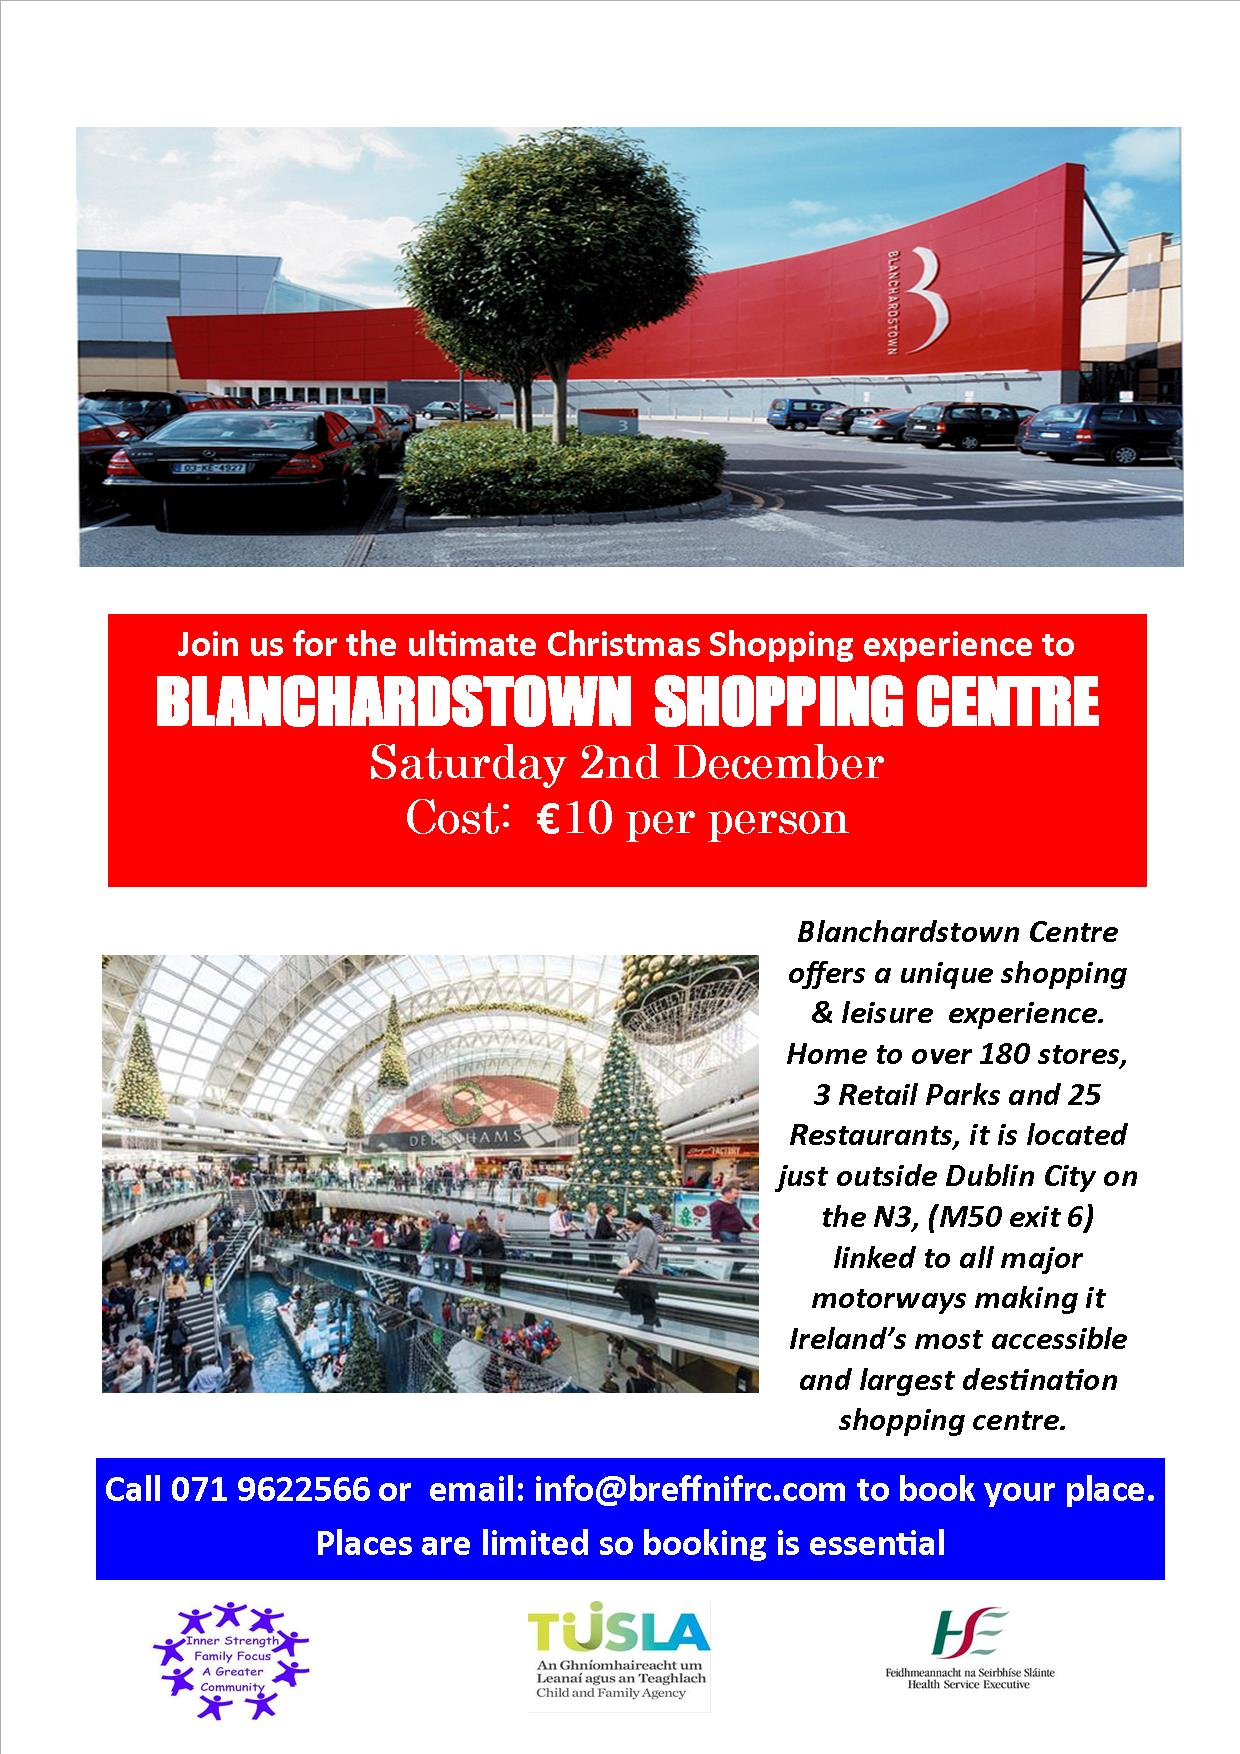 MyCarrick Event - Breffni Family Resource Centre - Trip to Blanchardstown Shopping Centre